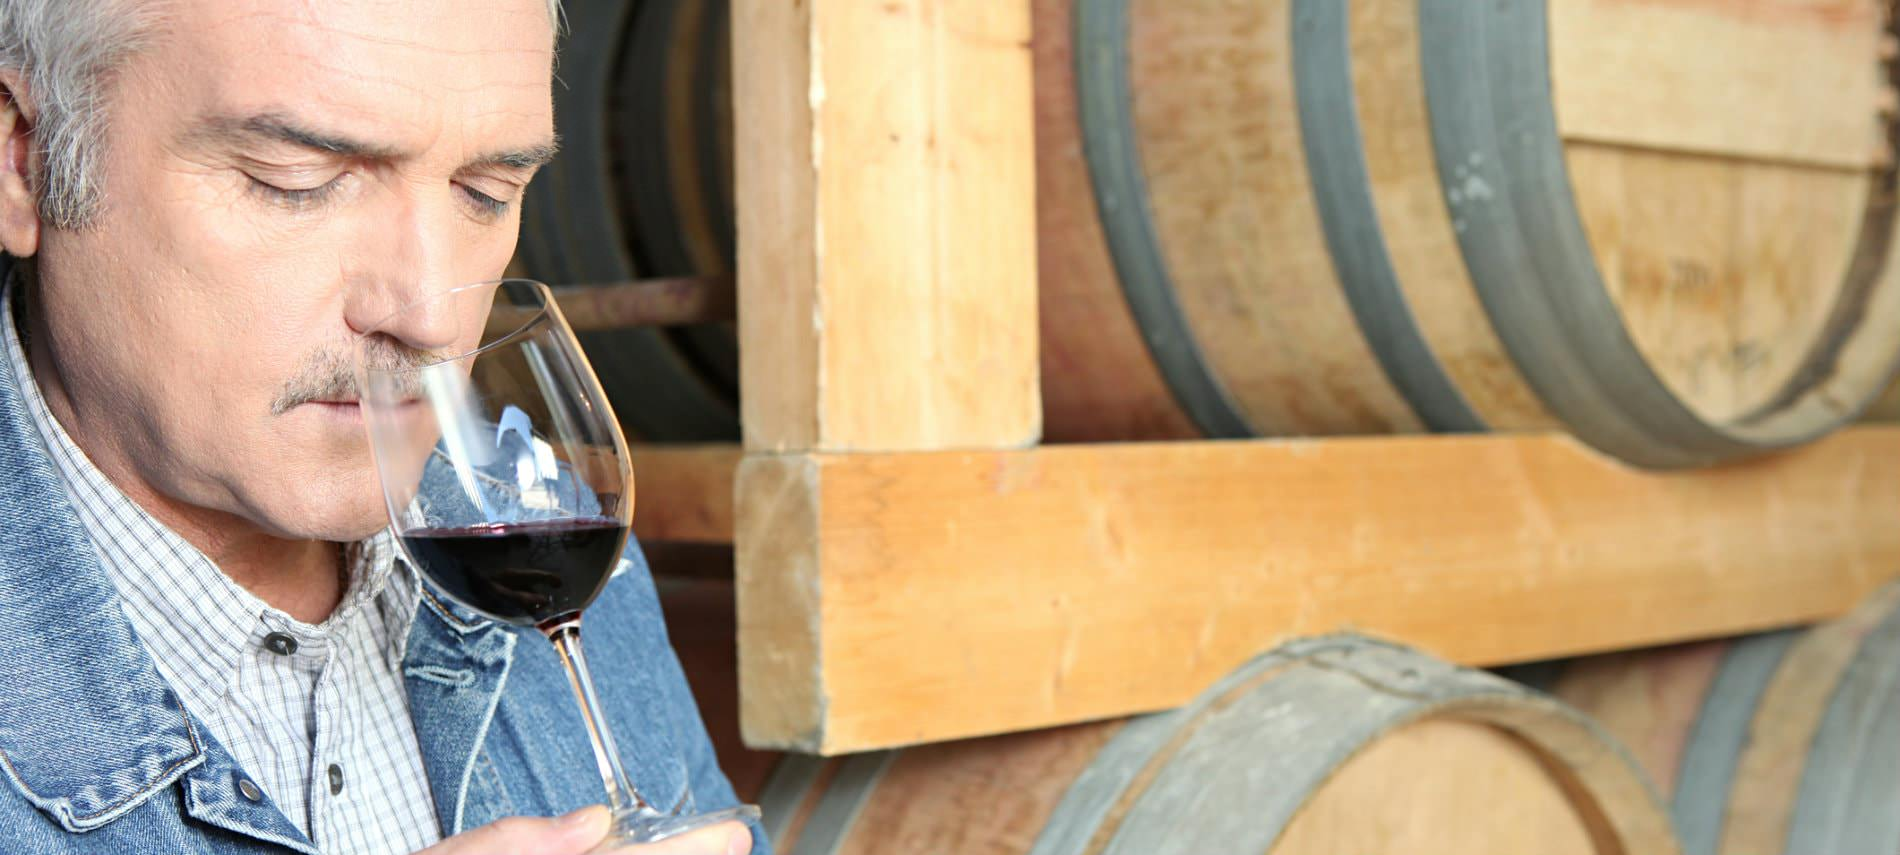 Man with grey hair and mustache sniffing a glass of purple-red wine with wine barrels in the background